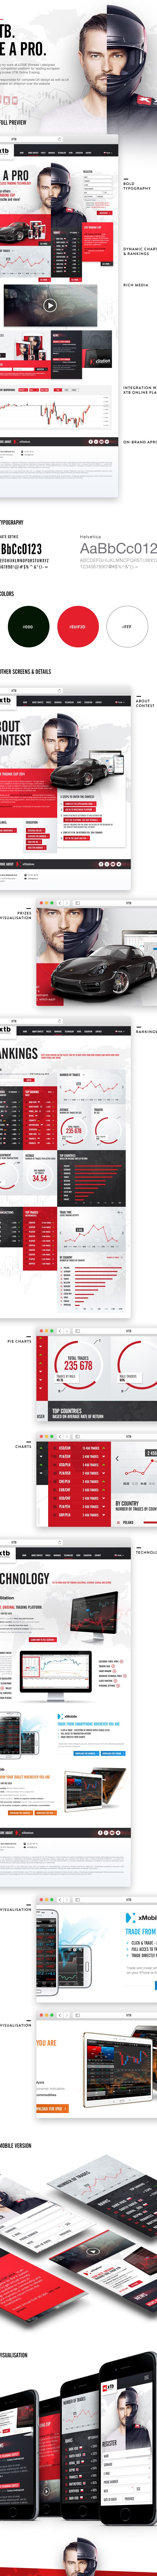 XTB Online Trading. Be a Pro. on Behance